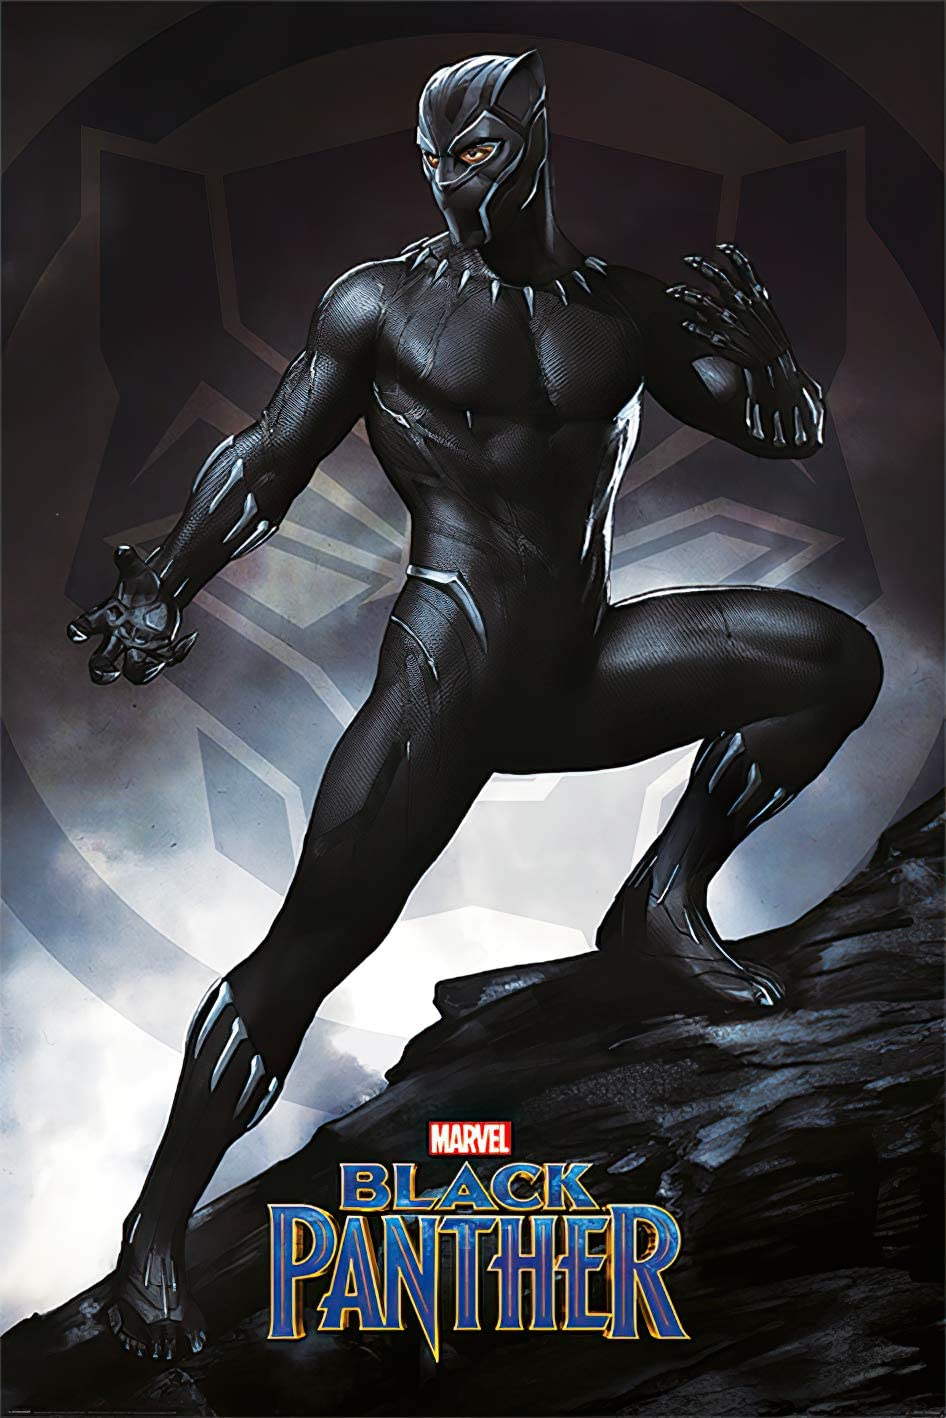 Black Panther - Marvel Movie Poster/Print (Stance) (Size: 24 inches x 36 inches)